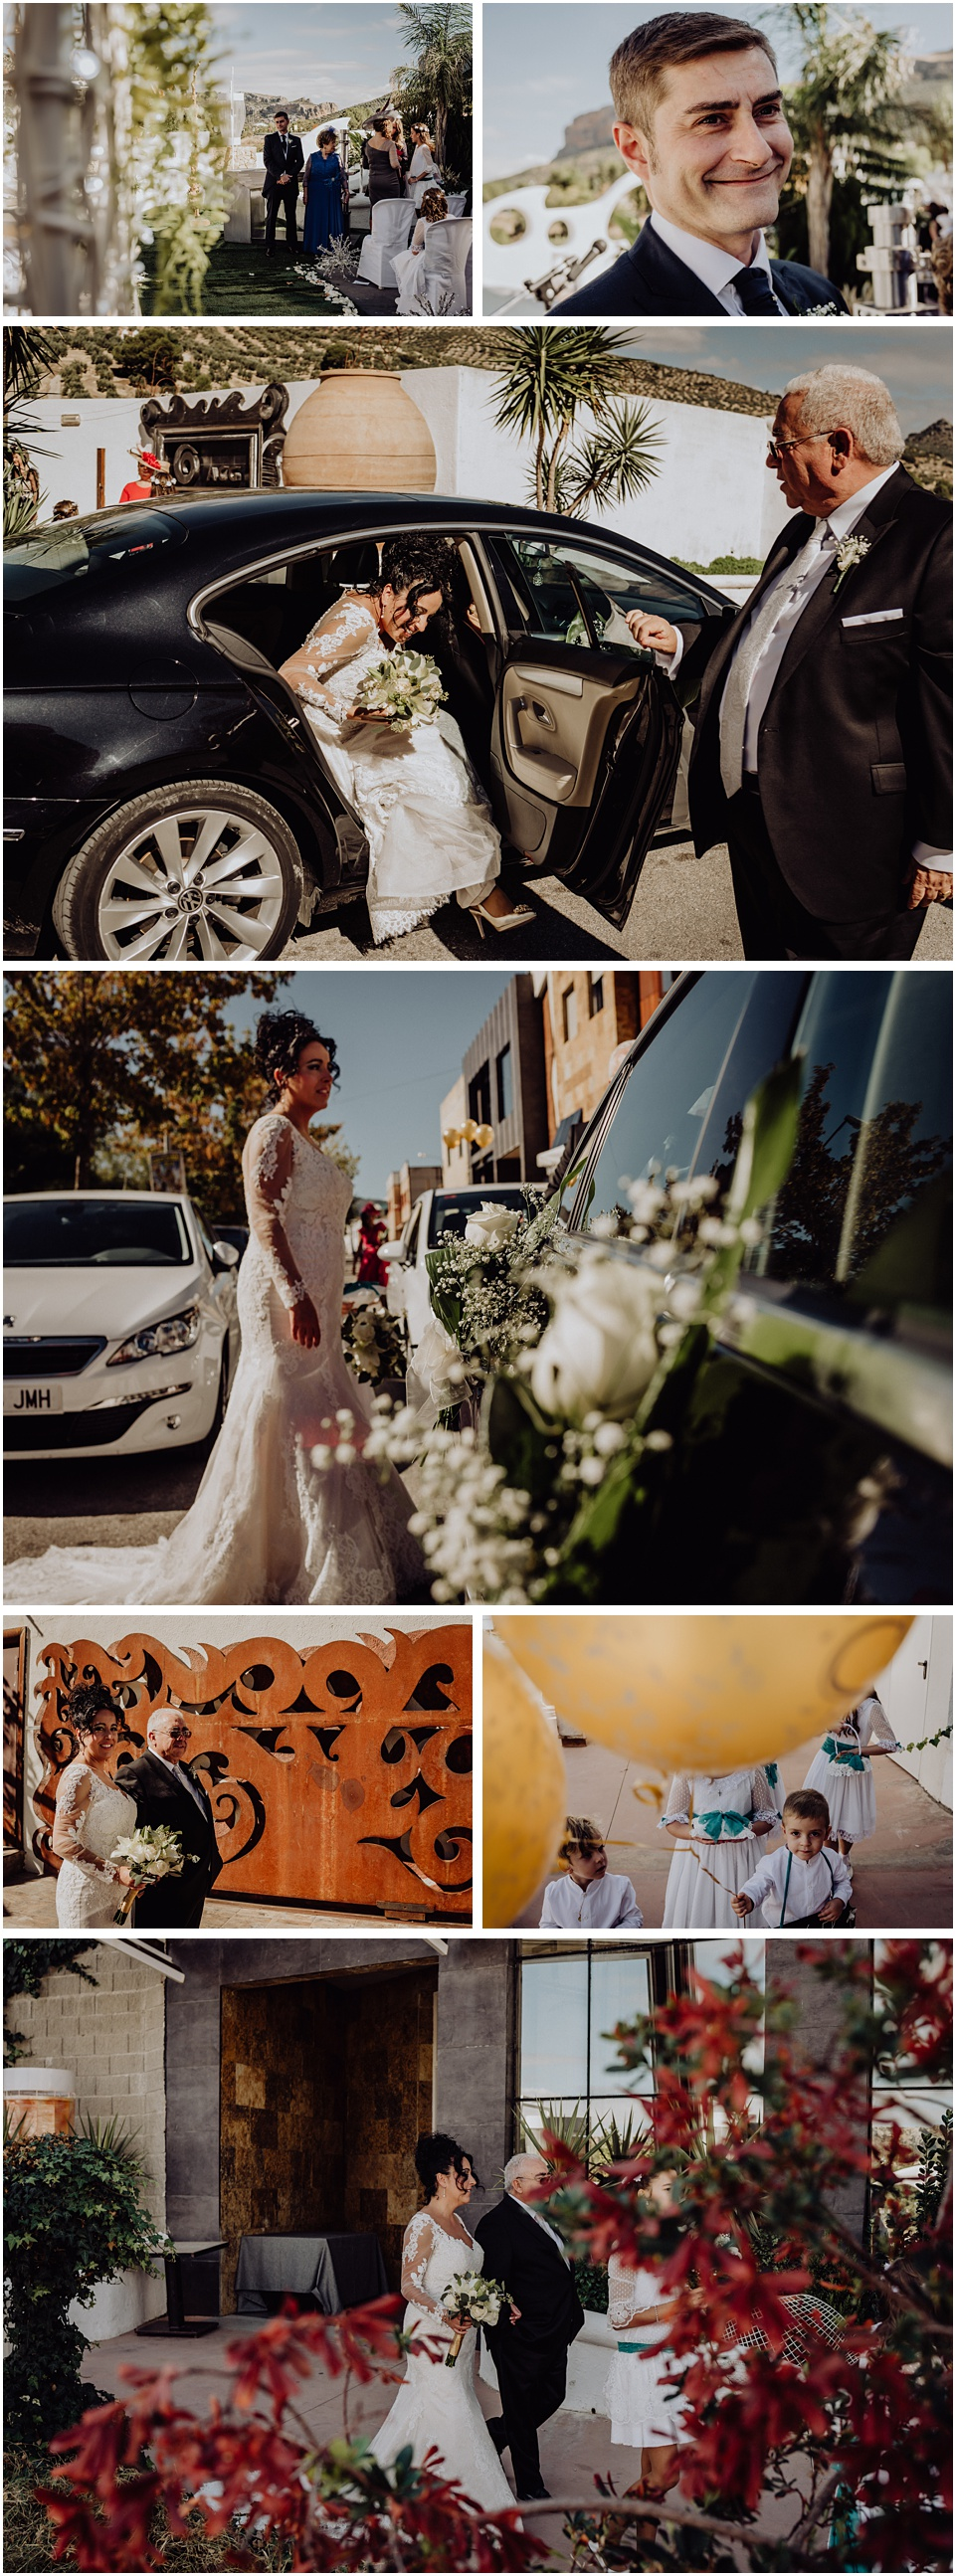 Boda entre Jaen y los Villares,boda en jaen,bodorrio,fotografo de boda,fotografo de boda en jaen,fotografo de bodas,fotografos de boda en jaen,jaen,